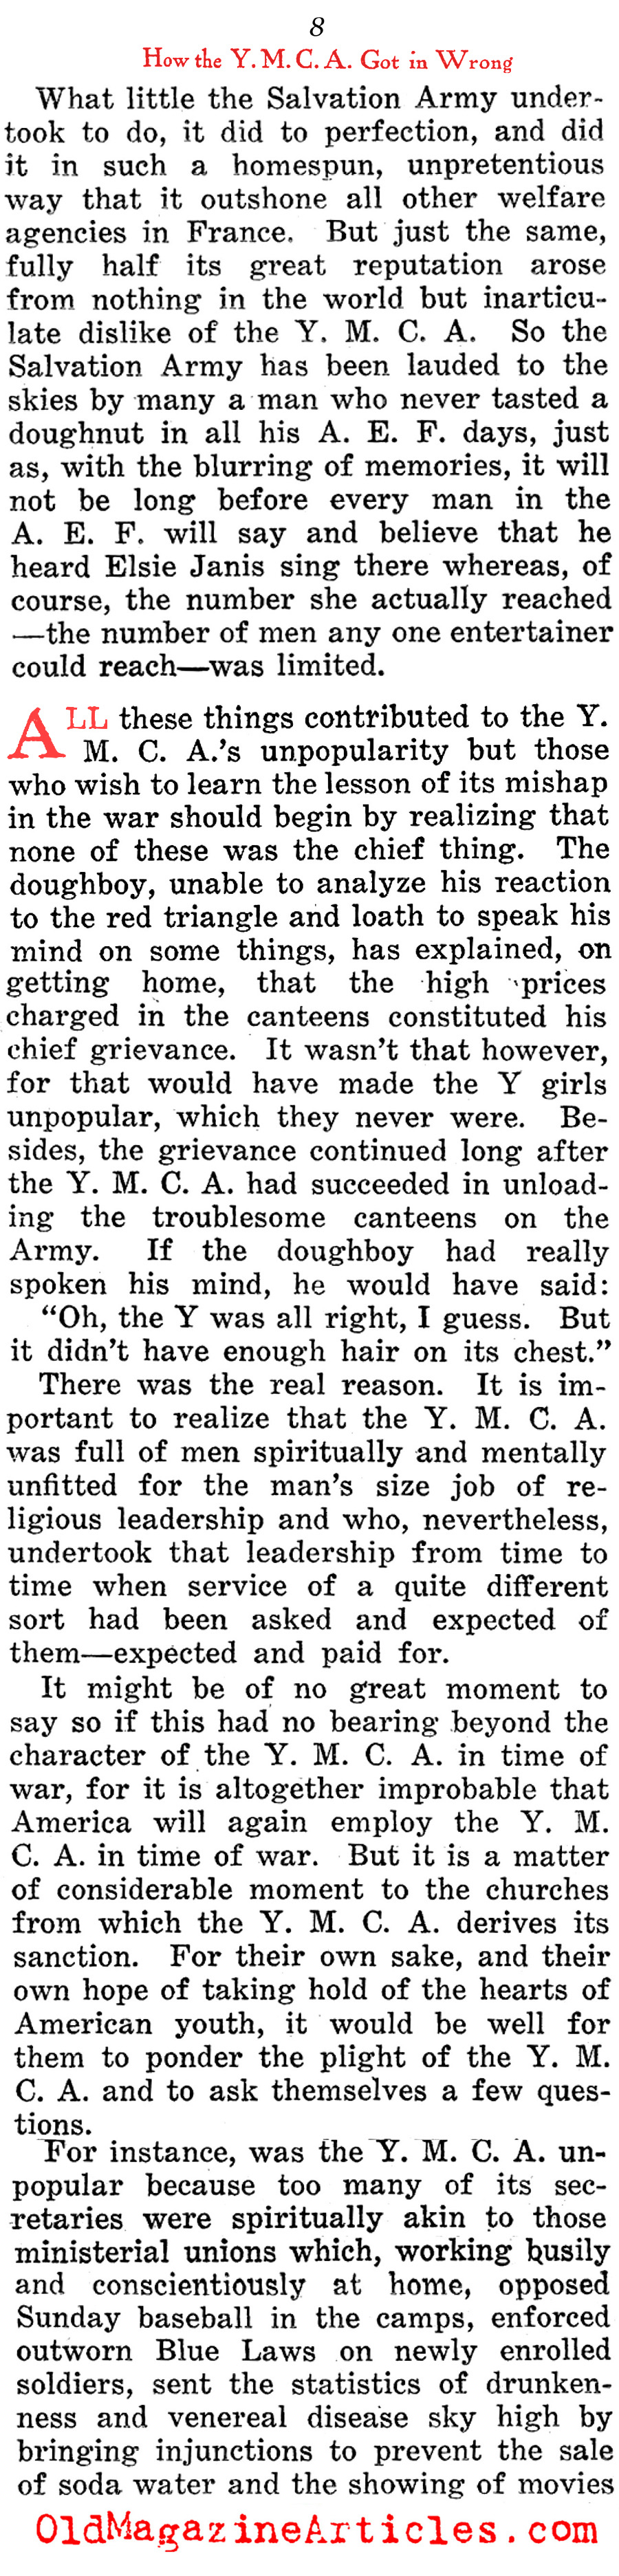 How the YMCA Got it Wrong (The Home Sector, 1919)